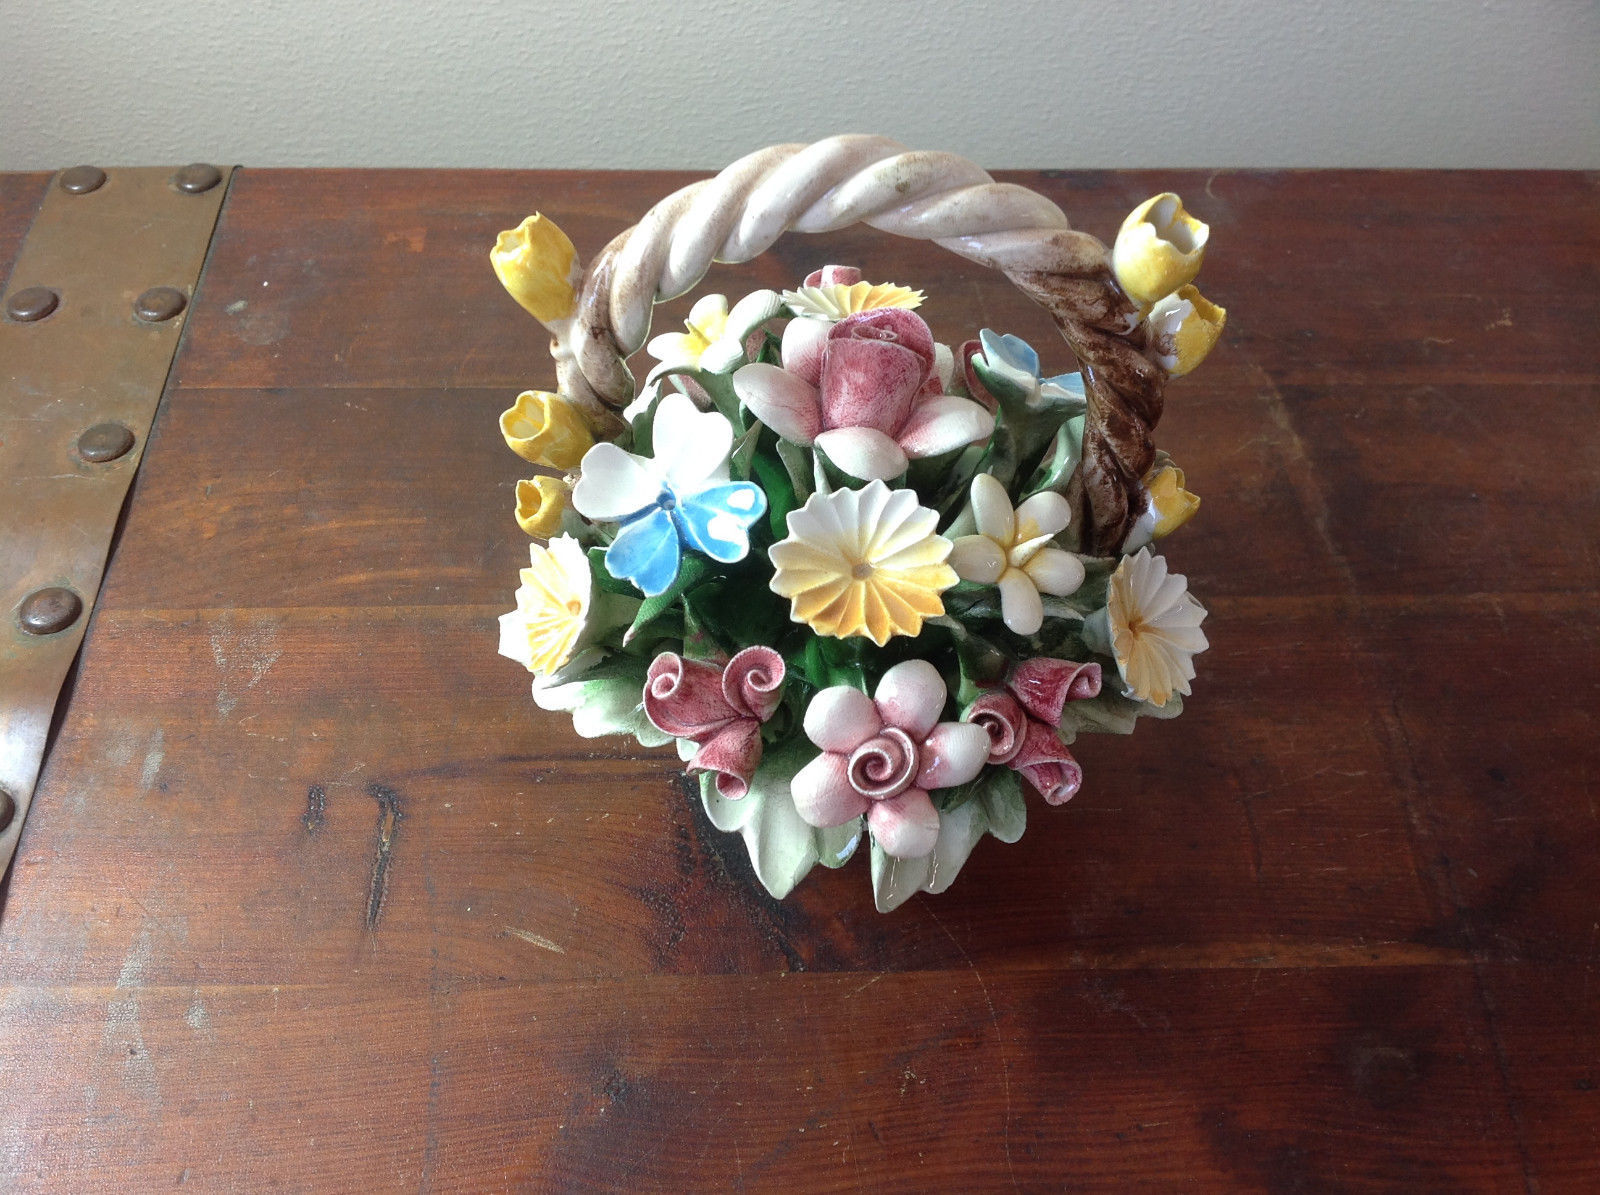 Handmade Ceramic Flower Basket with Intricate Ceramic Flowers Made in Italy